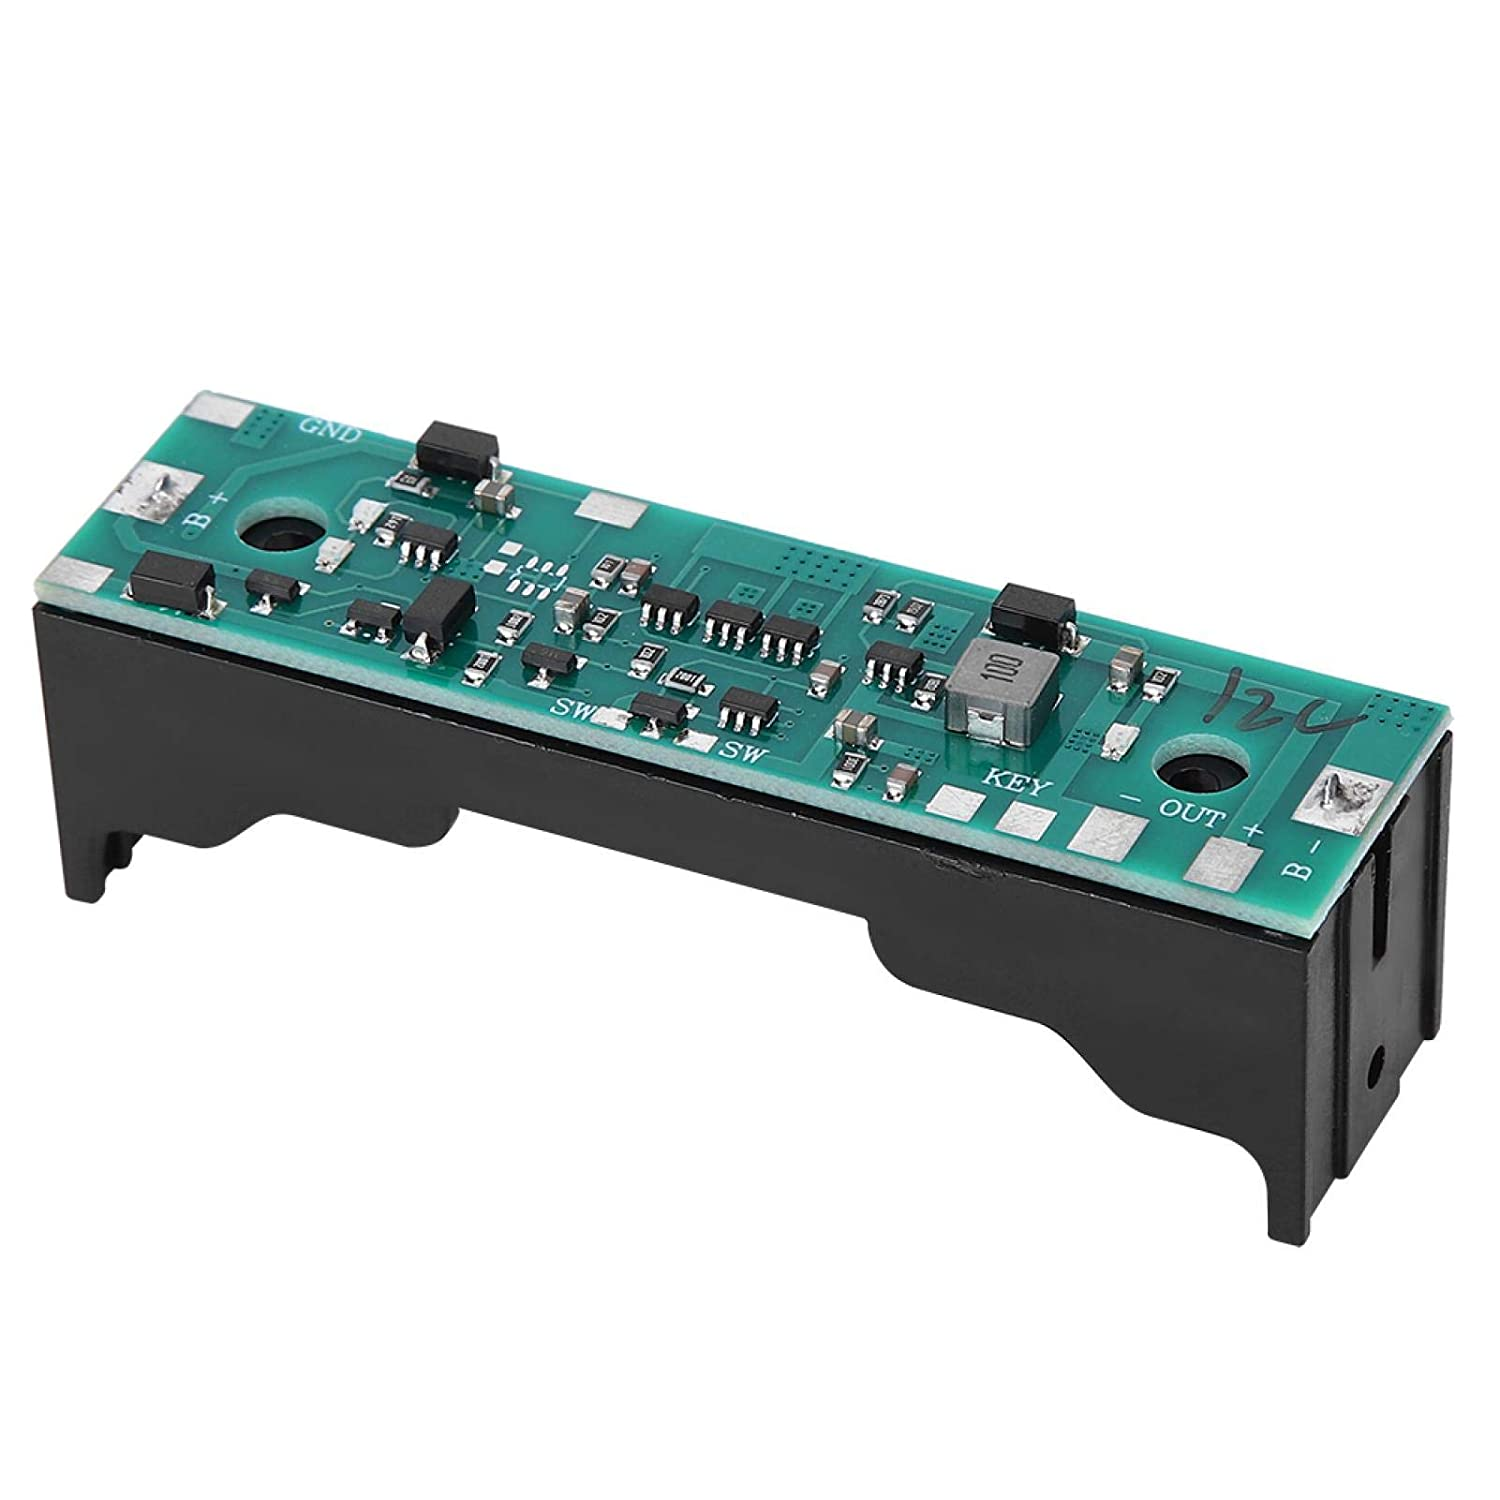 Board UPS, Battery Step Up Module 18650 Lithium Battery Charging with Multiple Protection Functions for UPS Power Supply for Industry for Raspberry Pi 4B 3B+ 3B